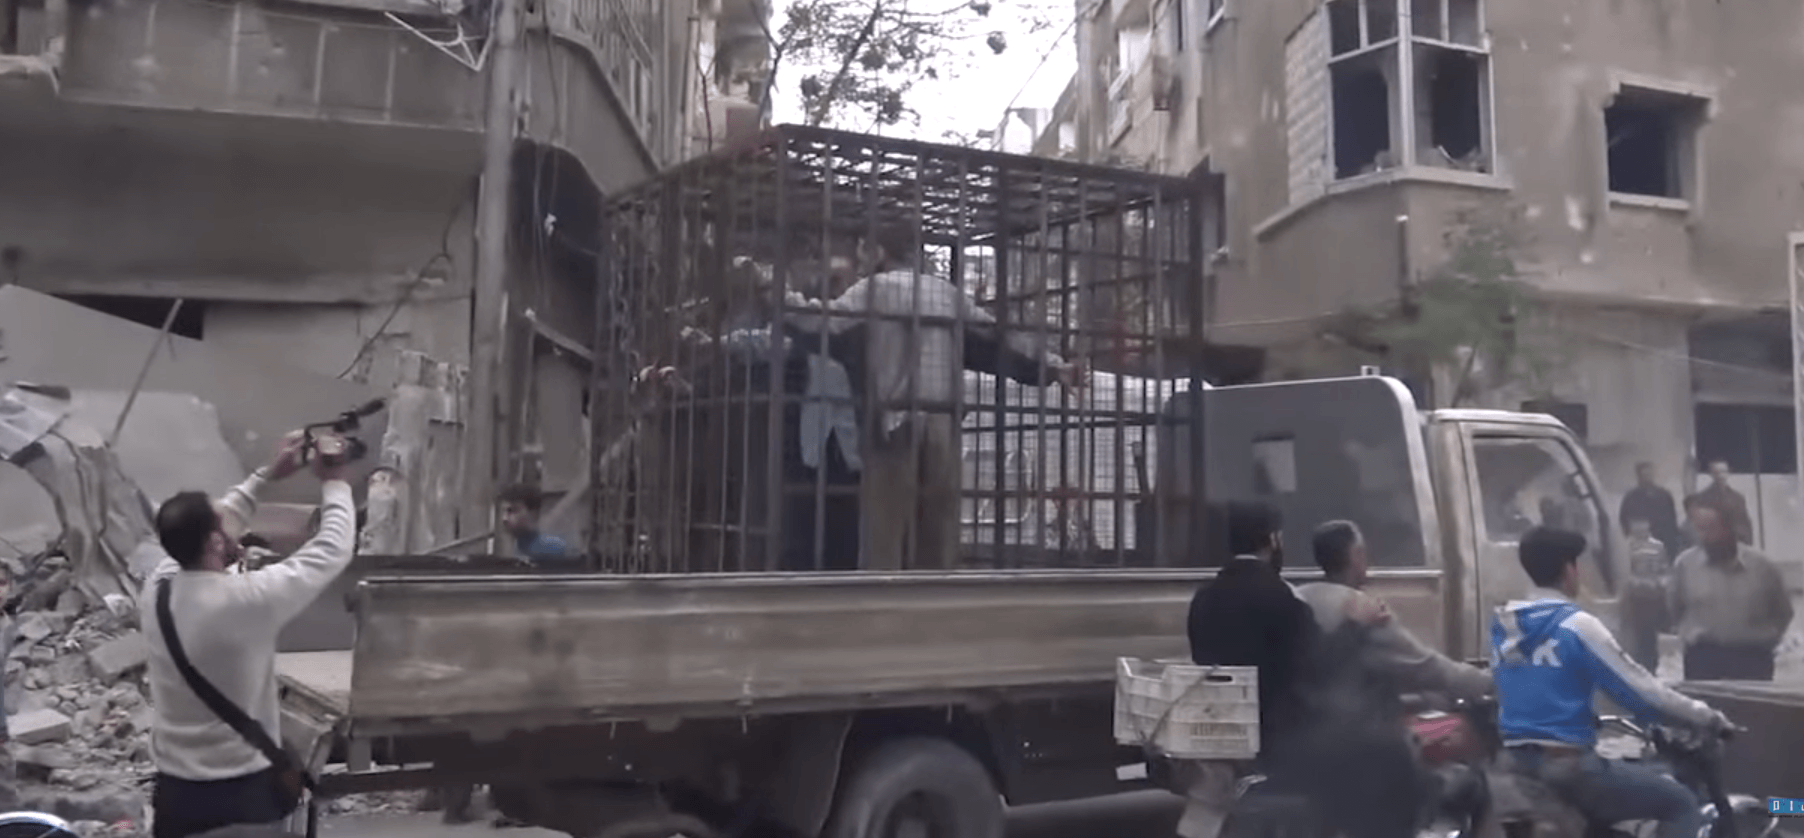 Still from video showing caged civilians in Eastern Ghouta, Syria. Courtesy of Sham News Network Youtube.